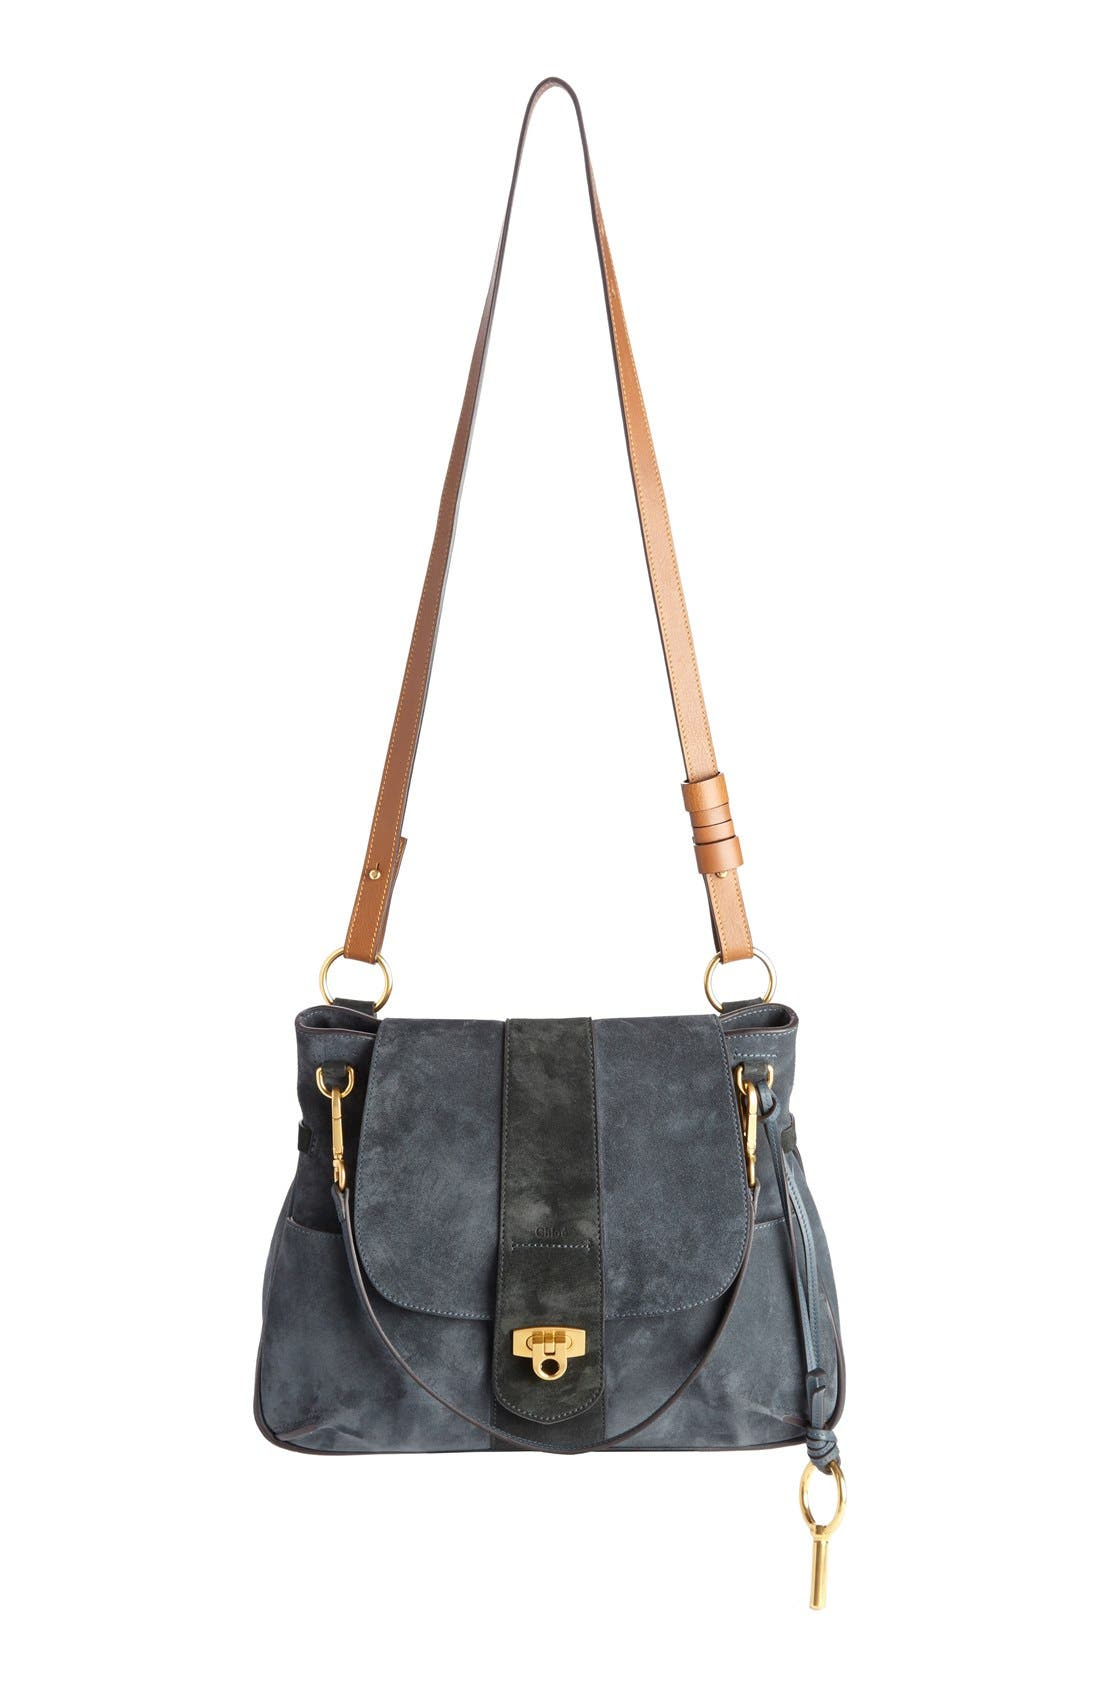 'Medium Lexa' Suede Shoulder Bag,                             Main thumbnail 1, color,                             Silver Blue